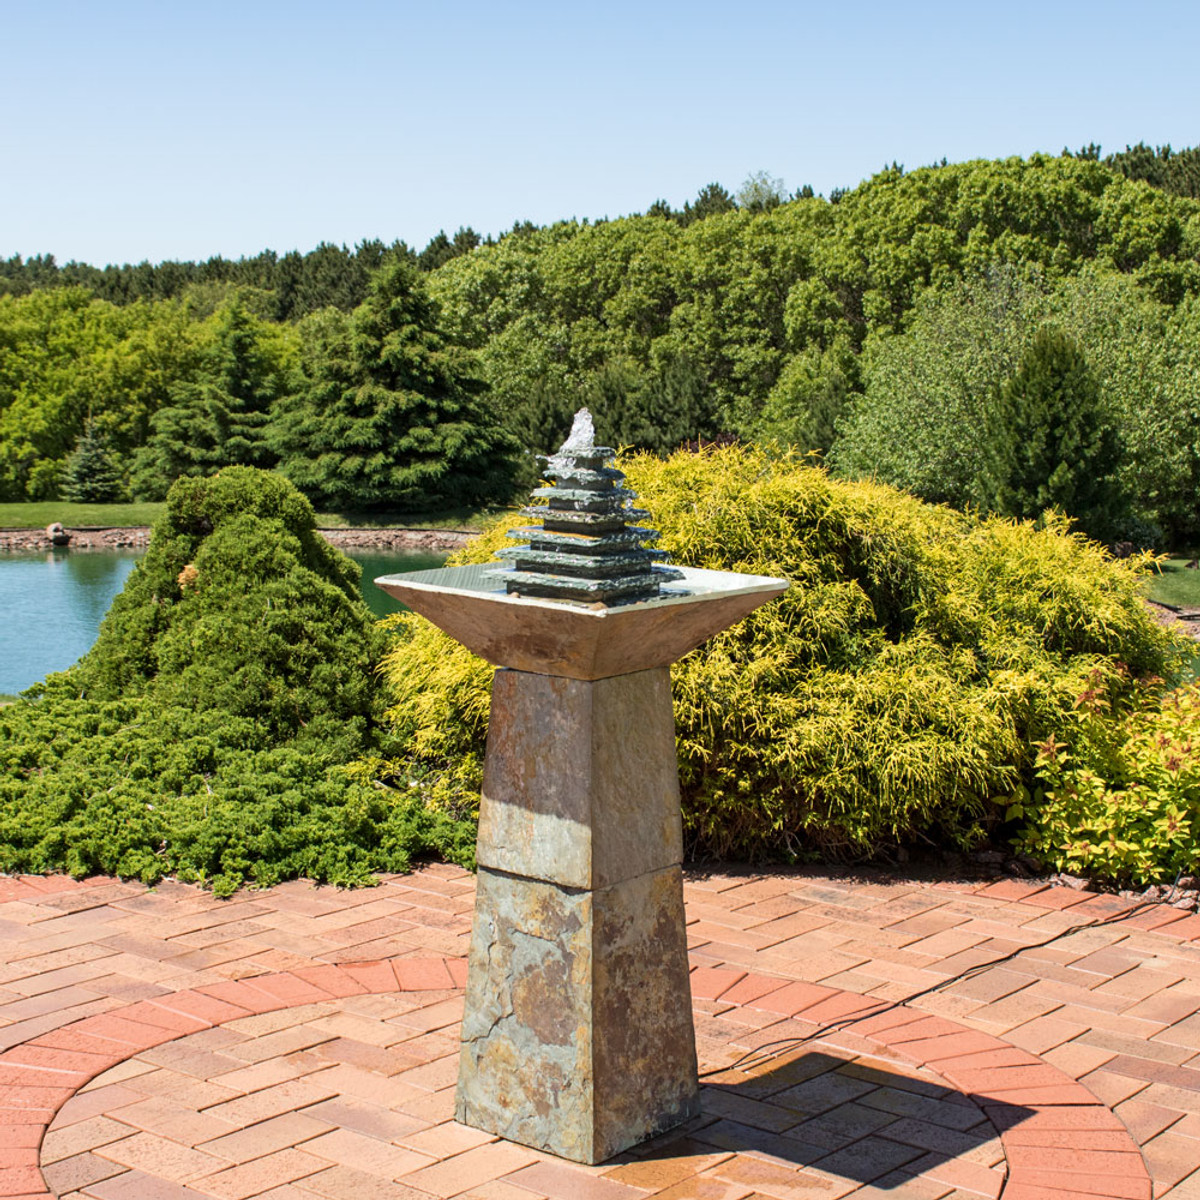 Sunnydaze Layered Slate Pyramid Outdoor Water Fountain with